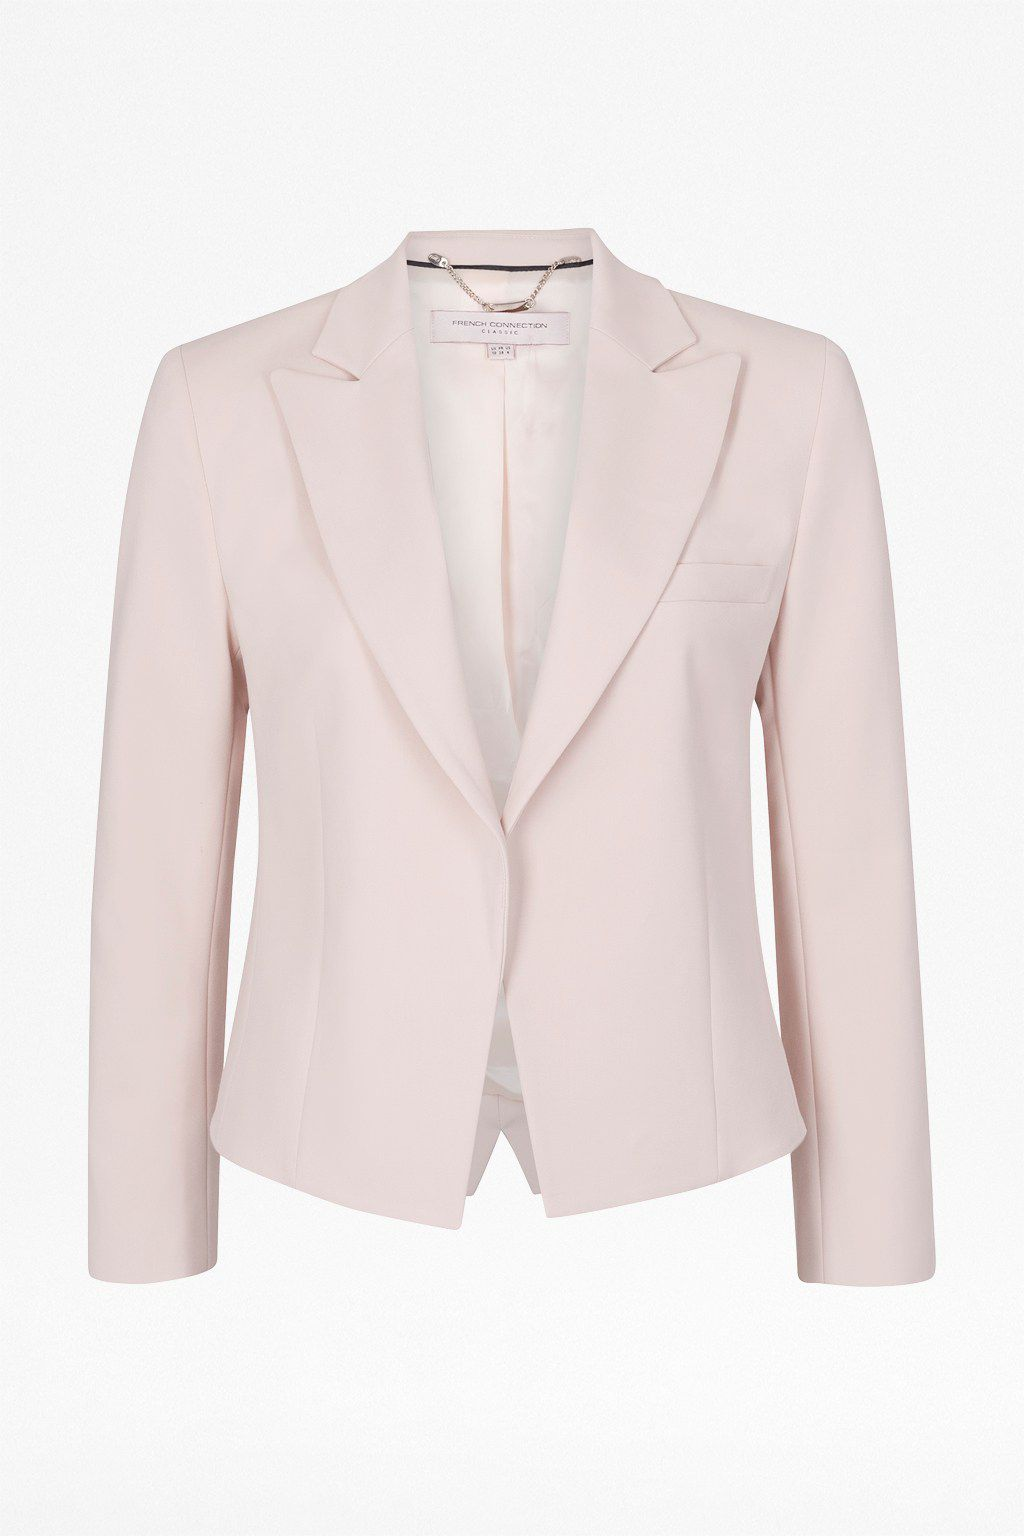 Capri cotton long sleeve cropped jacket